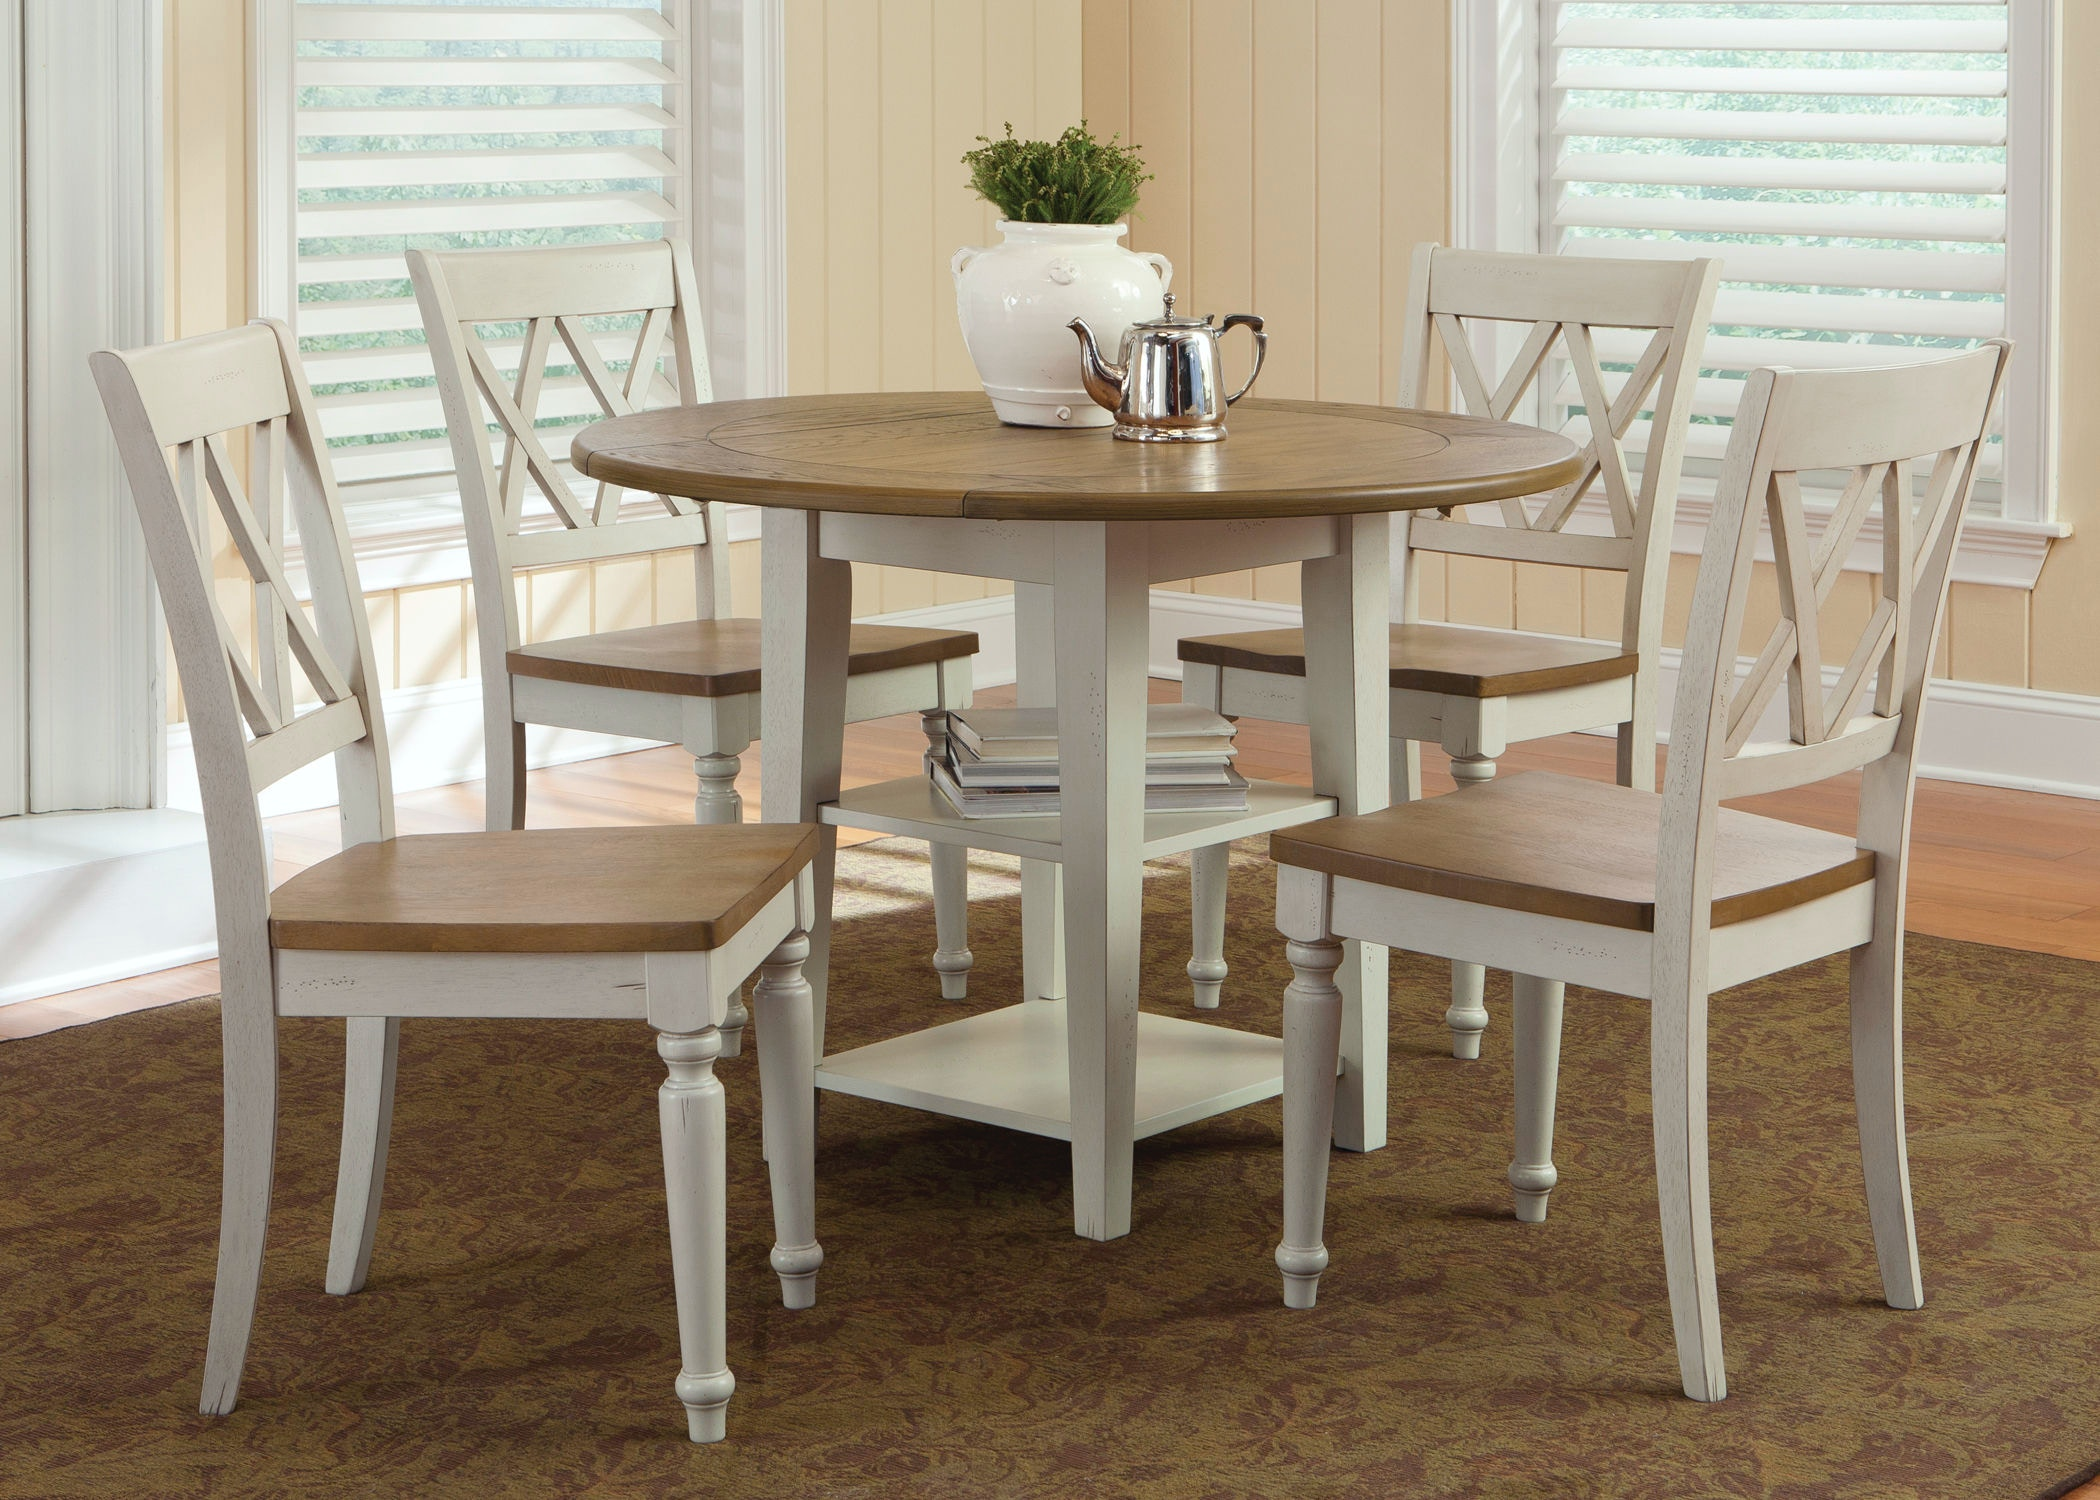 Nice Liberty Furniture Dining Room Drop Leaf Leg Table 841 T4242   Turner  Furniture Company   Avon Park And Sebring, FL